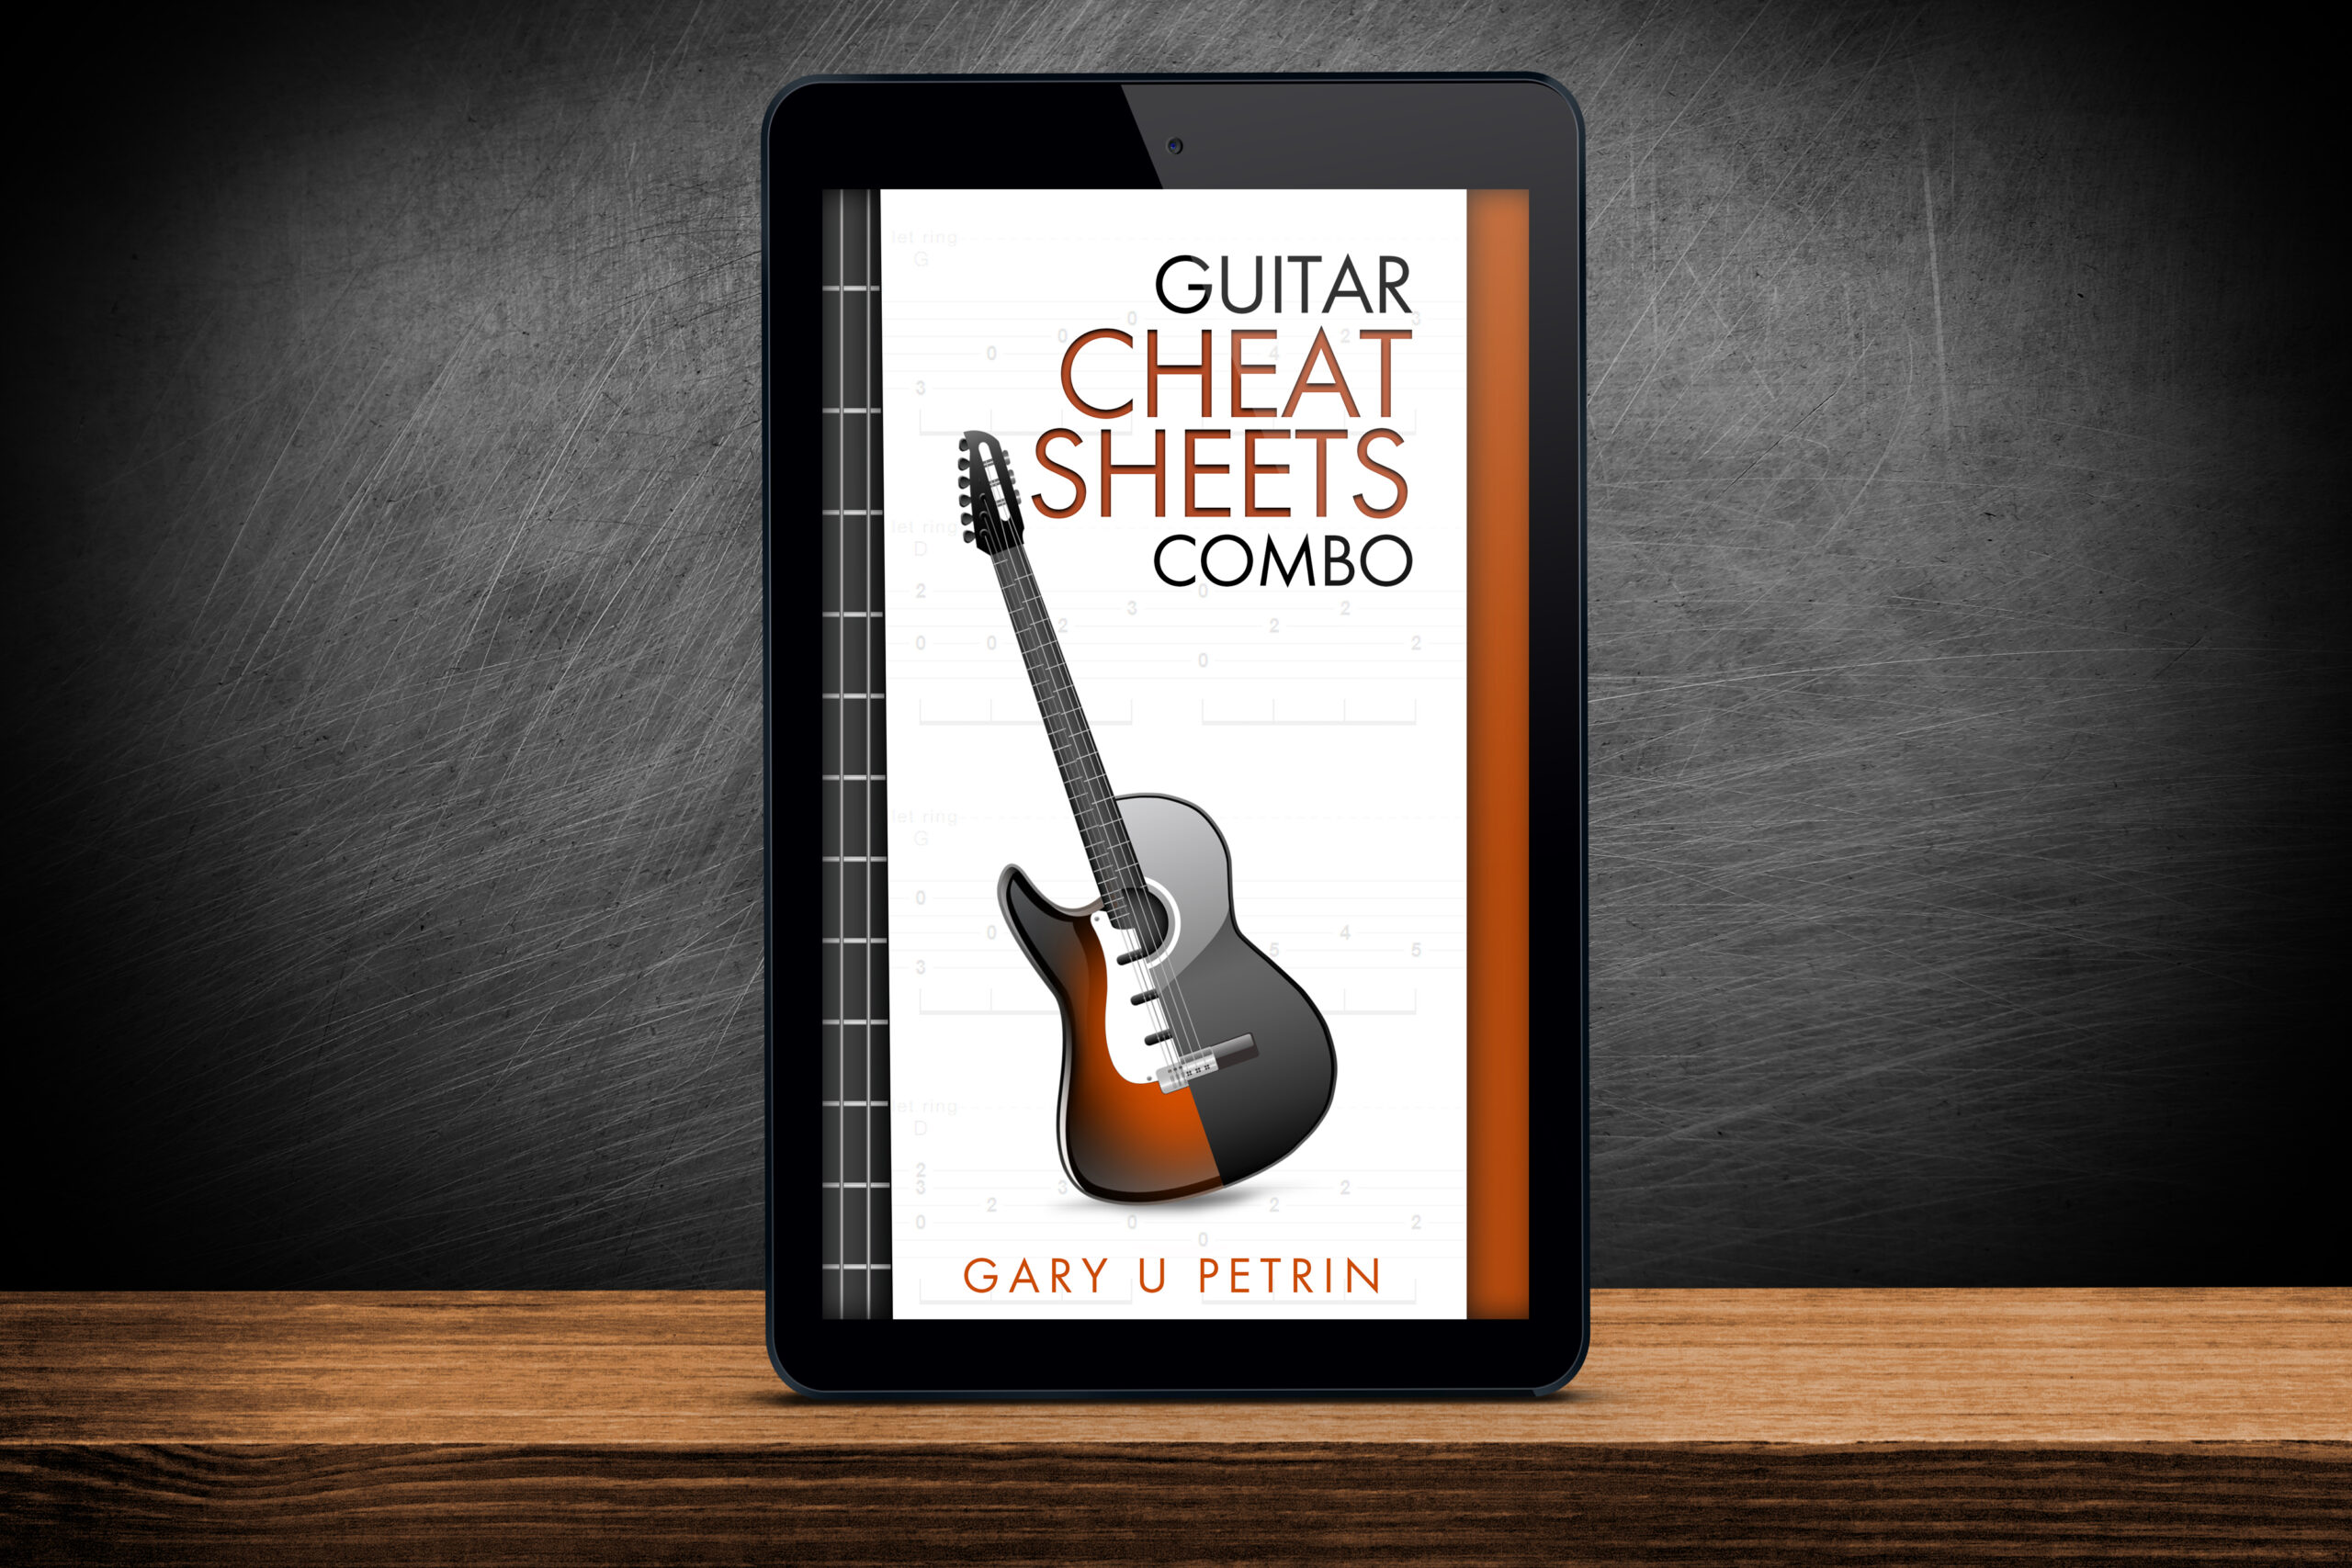 Guitar Cheat Sheets - Must have Resources for Guitarists!